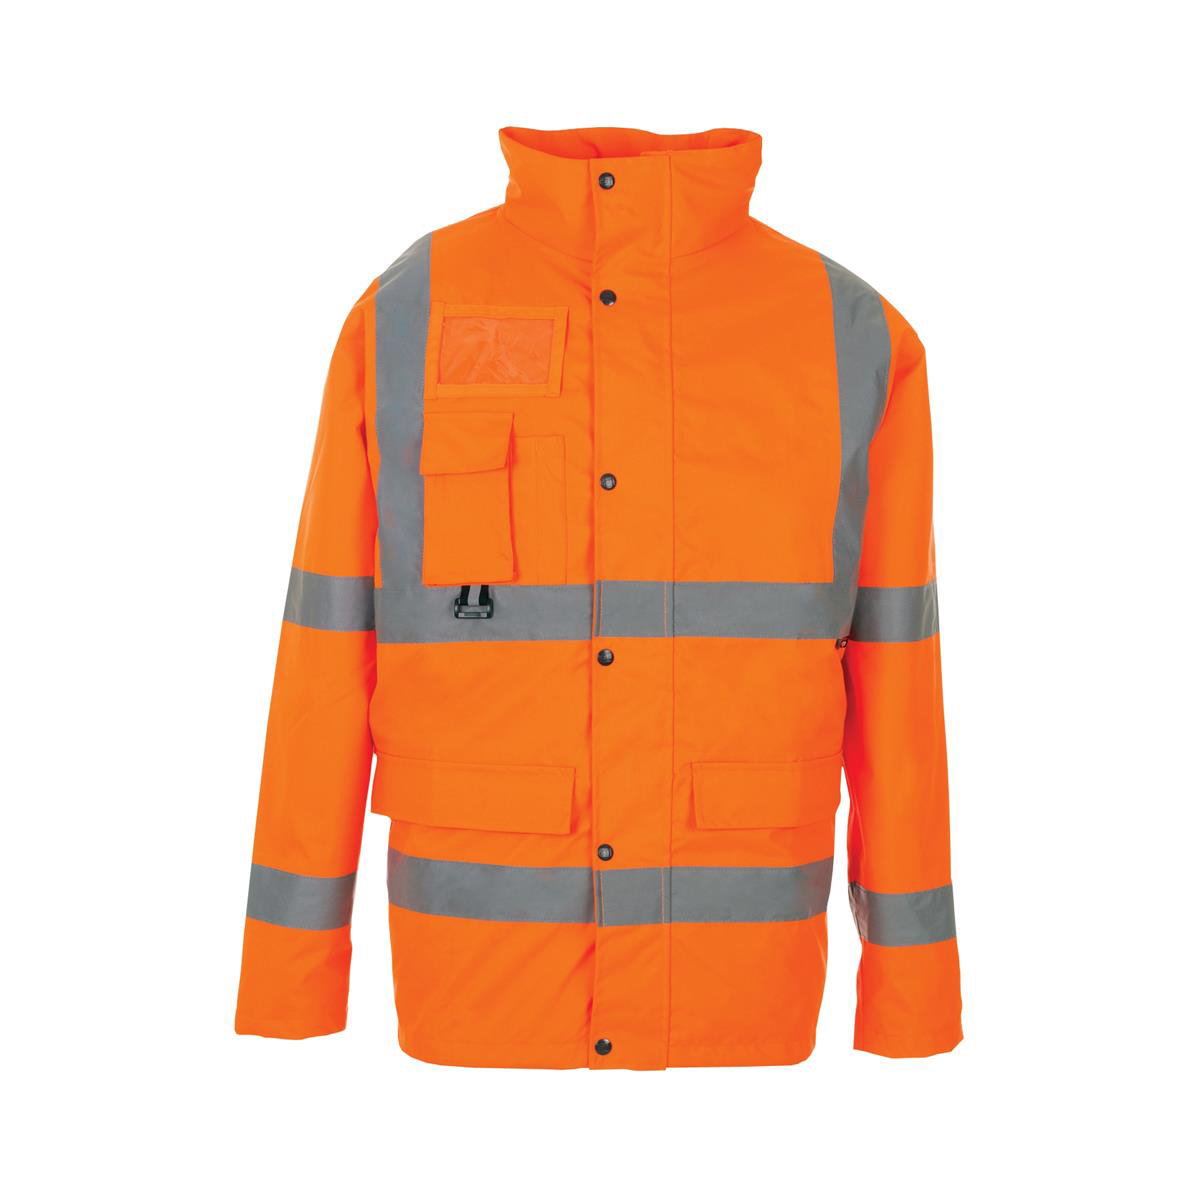 ST High Vis Breathable Jacket with 2 Band & Brace Extra Large Orange Ref 35B84 *Approx 3 Day Leadtime*